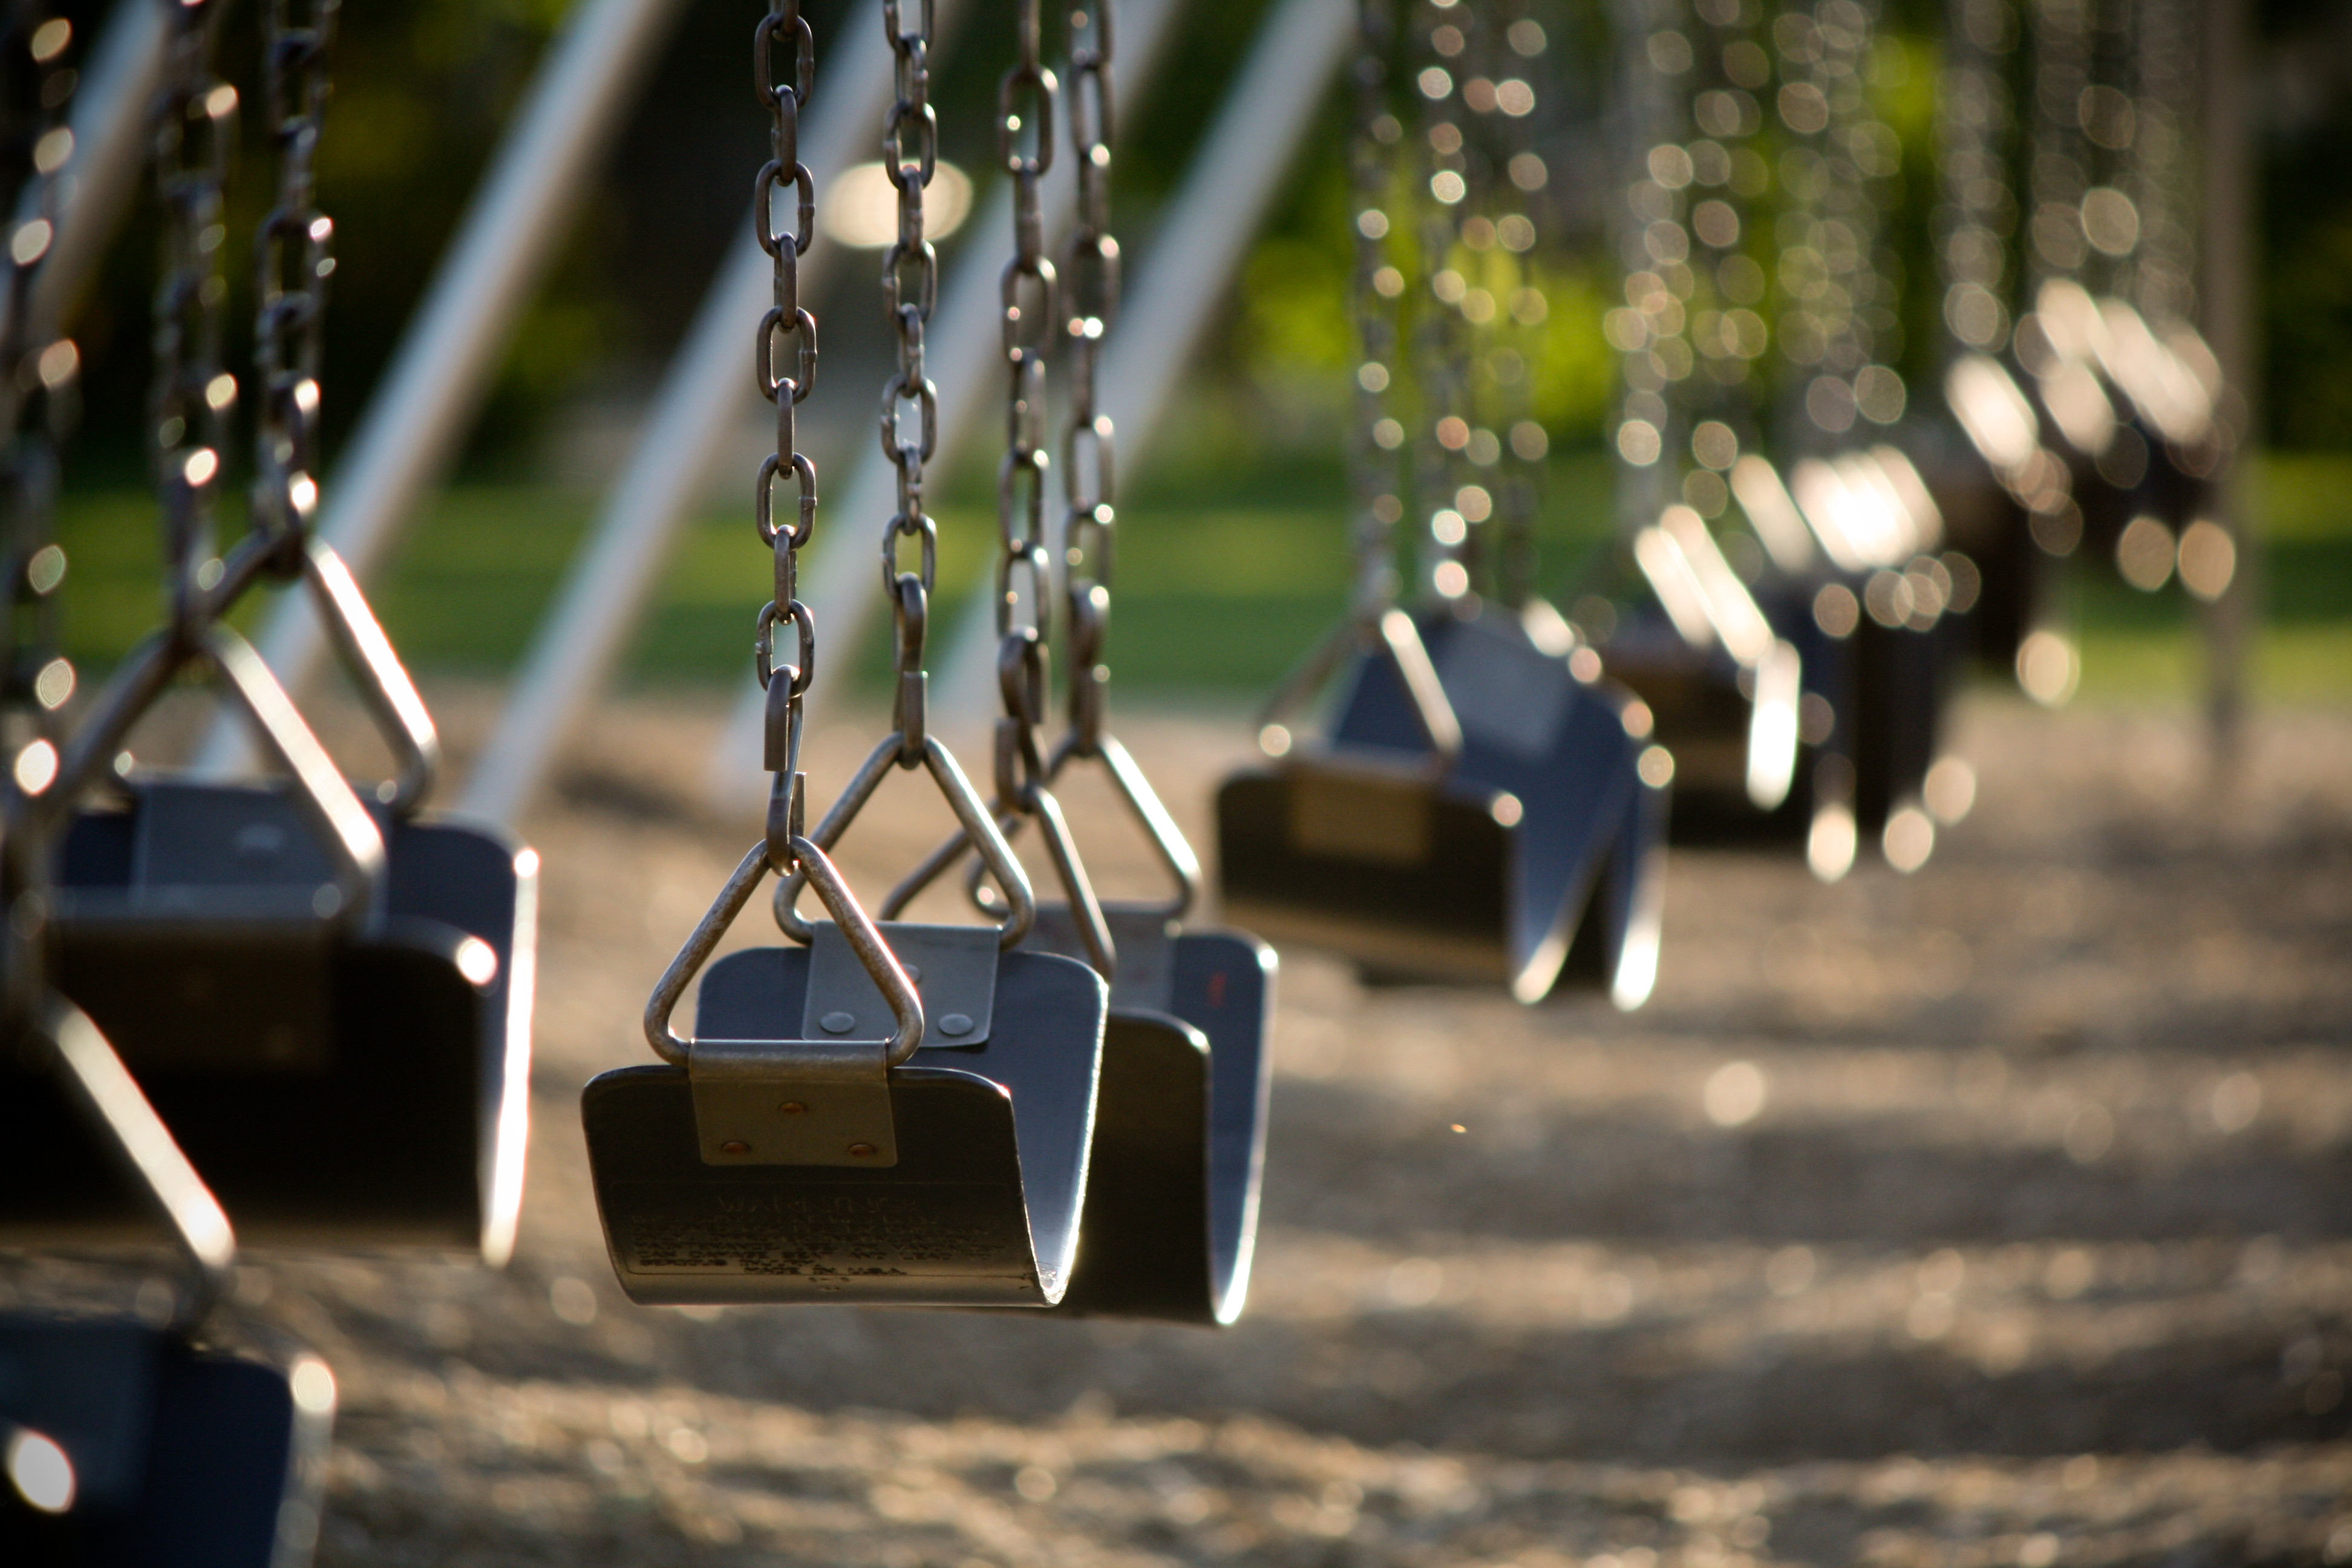 black swings at a playground